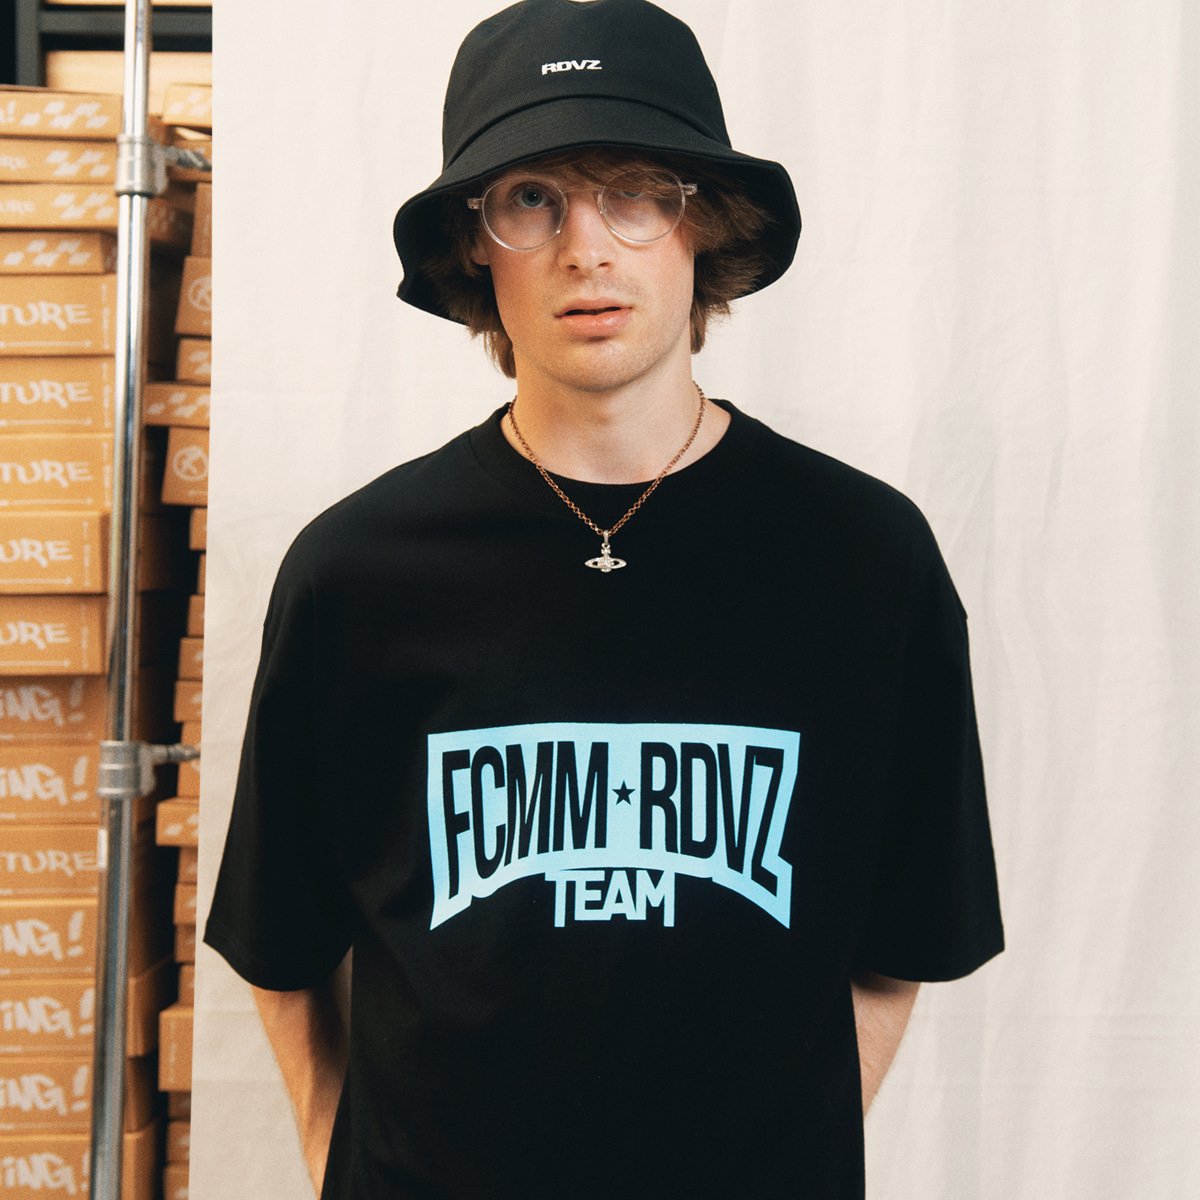 LOOK!FCMM X RDVZRACING TEAM T-SHIRT